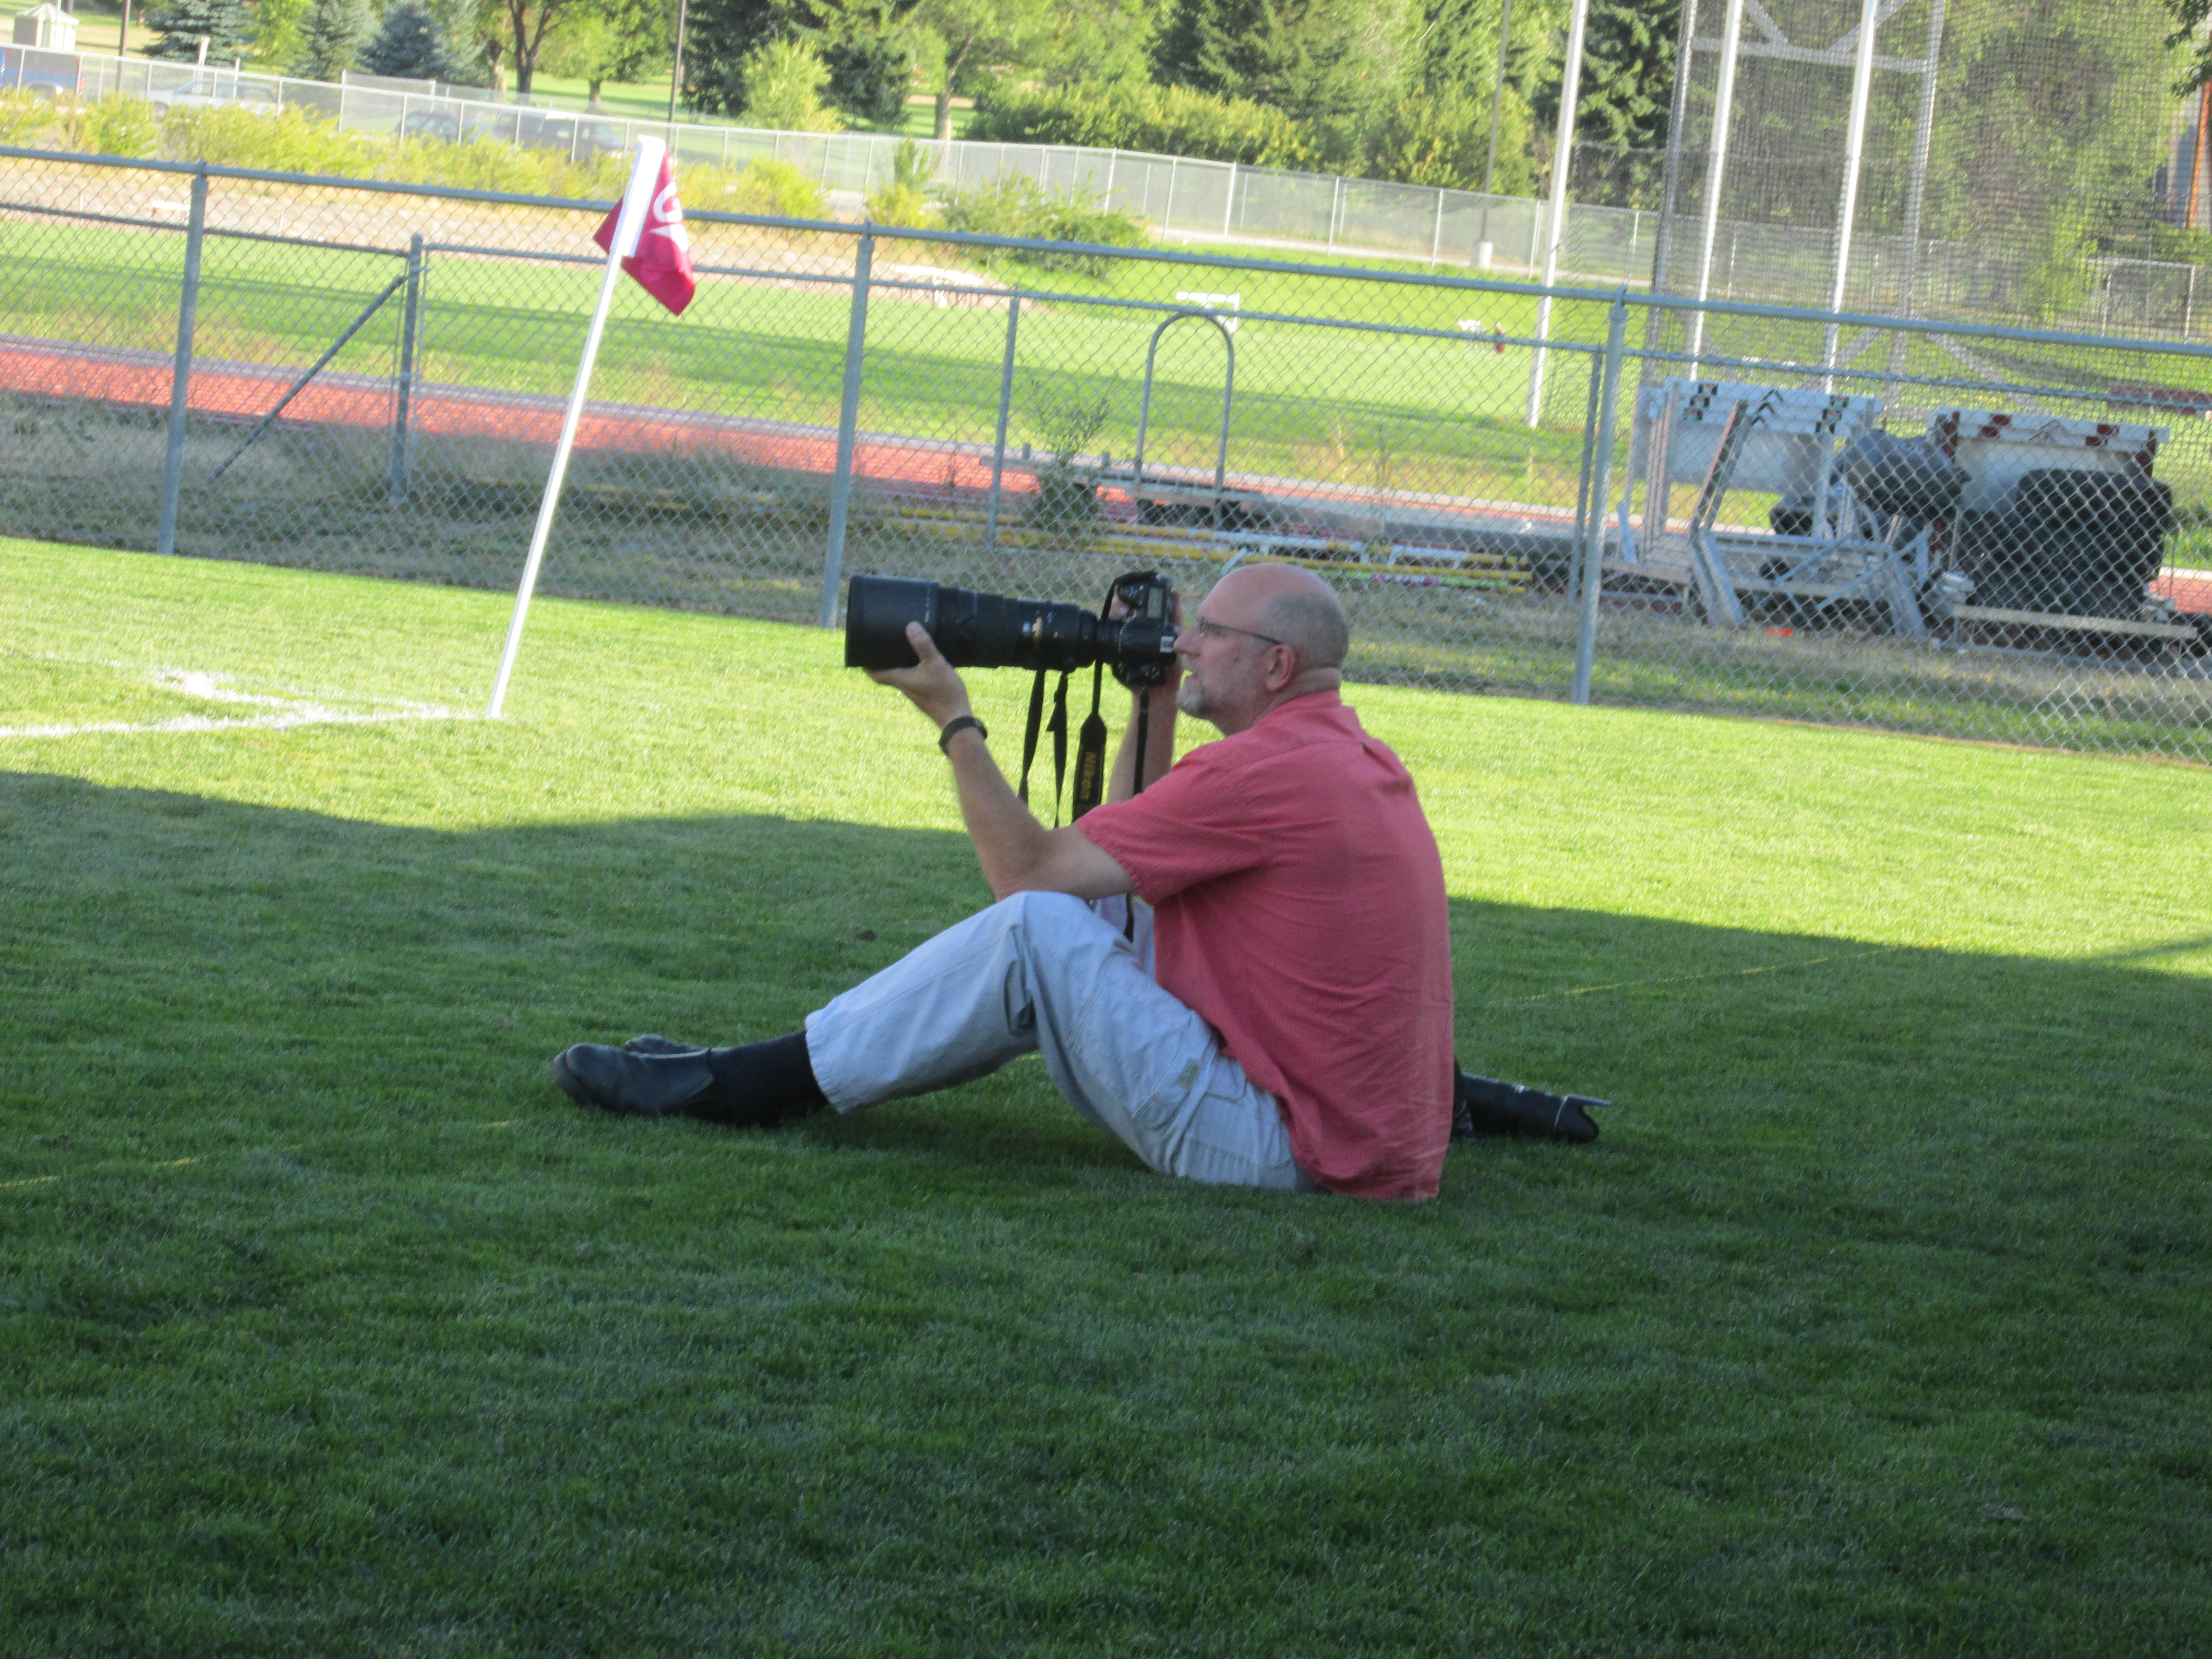 University of Montana photographer Todd Goodrich at today's Griz soccer game.